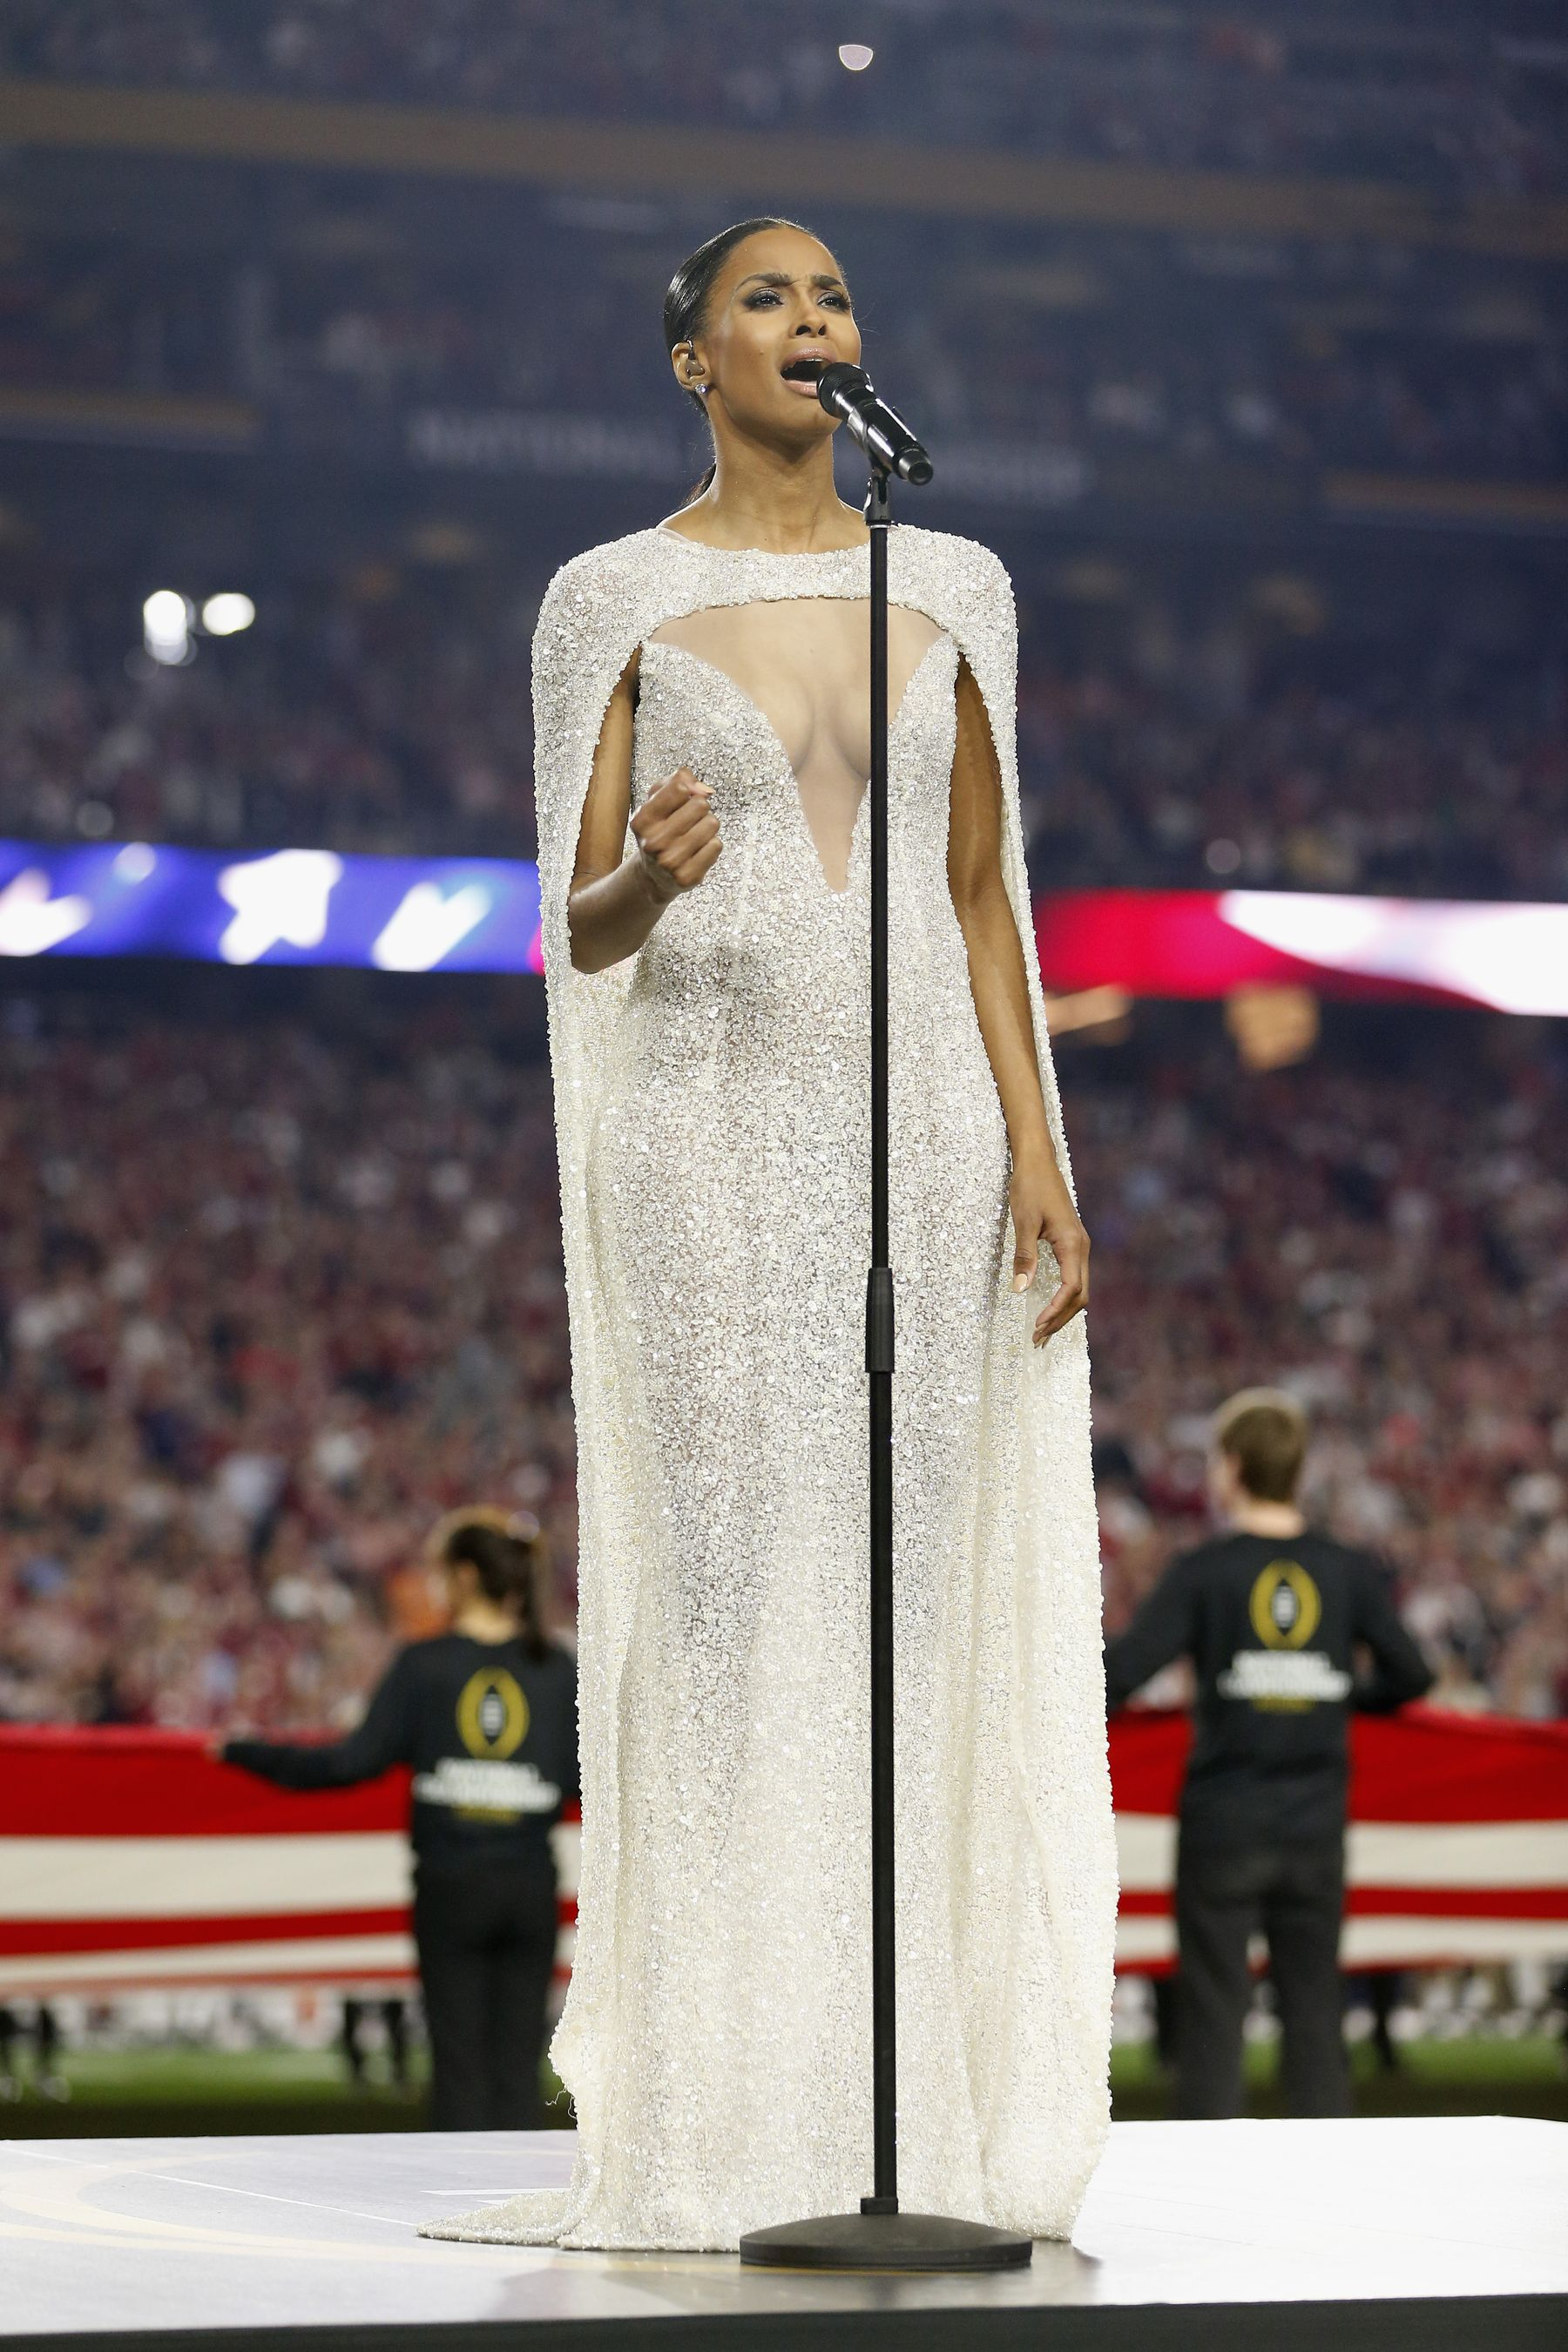 Ciara's Revealing NFL Dress Causes A Stir!